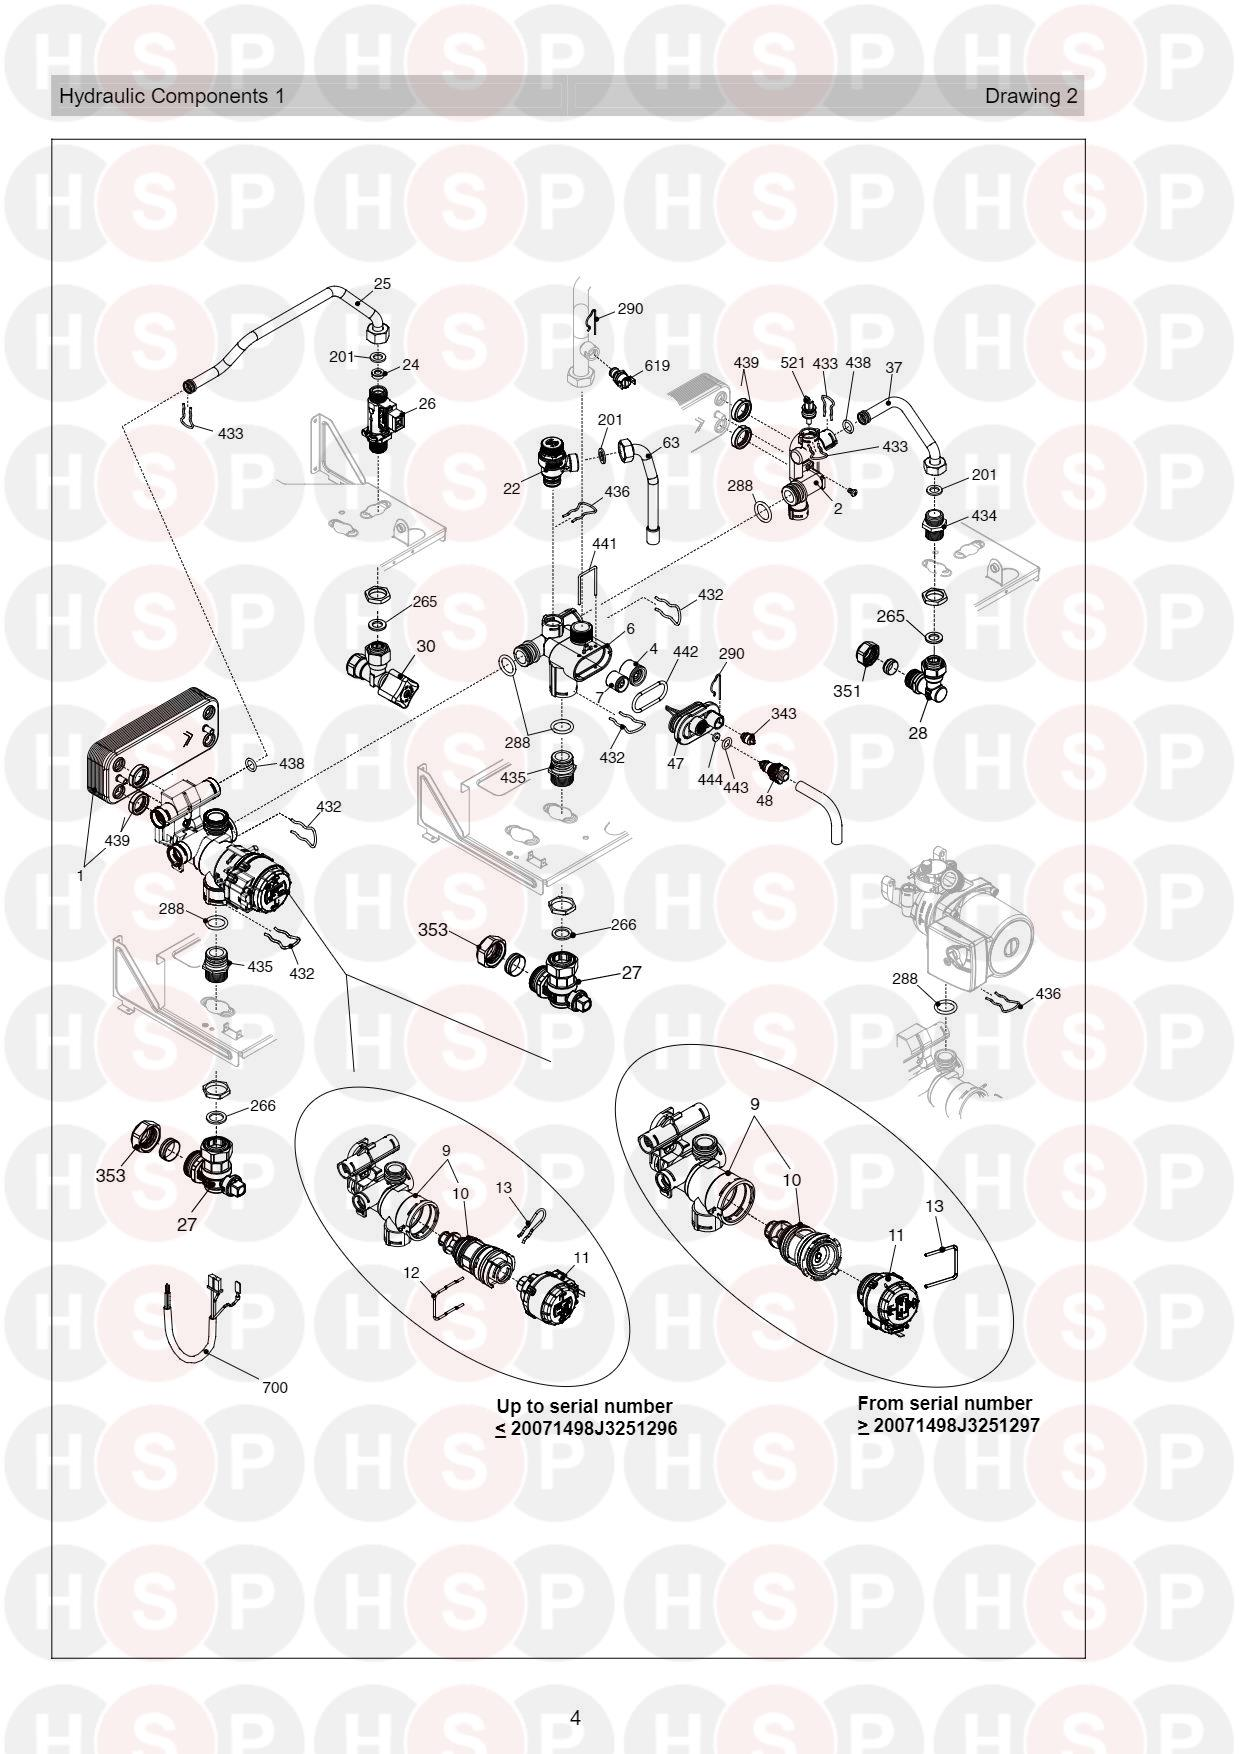 Hydraulics 1 diagram for Vokera Compact 25A Rev 7 (06/2016)